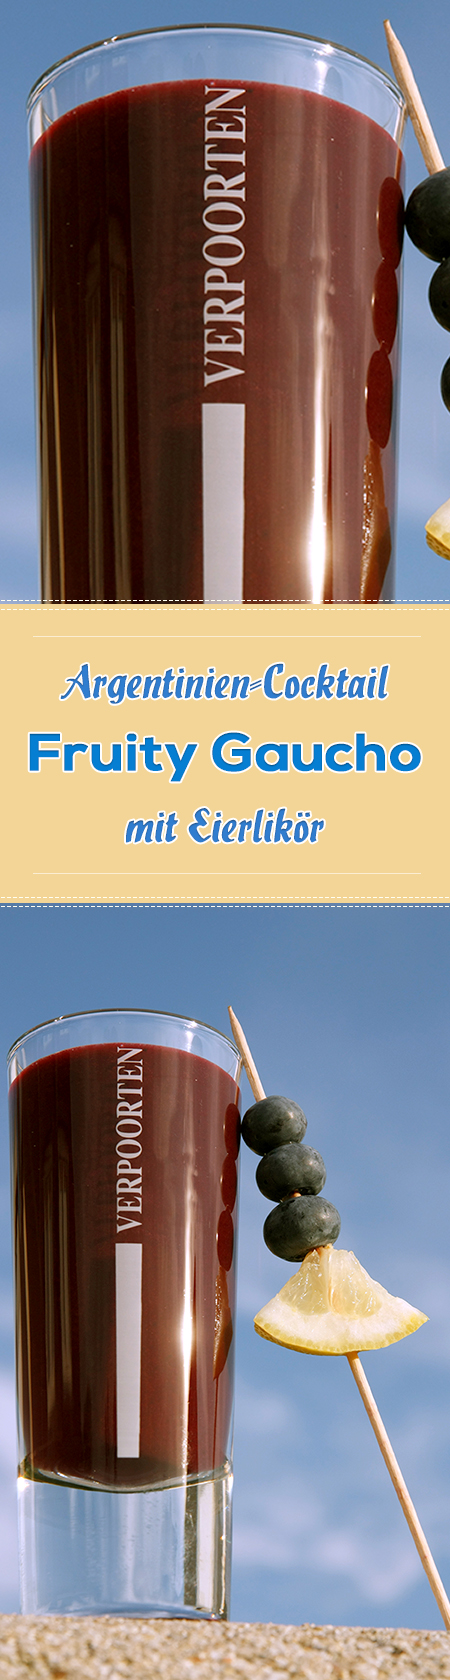 WM-Cocktails Länder-Cocktail Argentinien 'Fruity Gaucho'